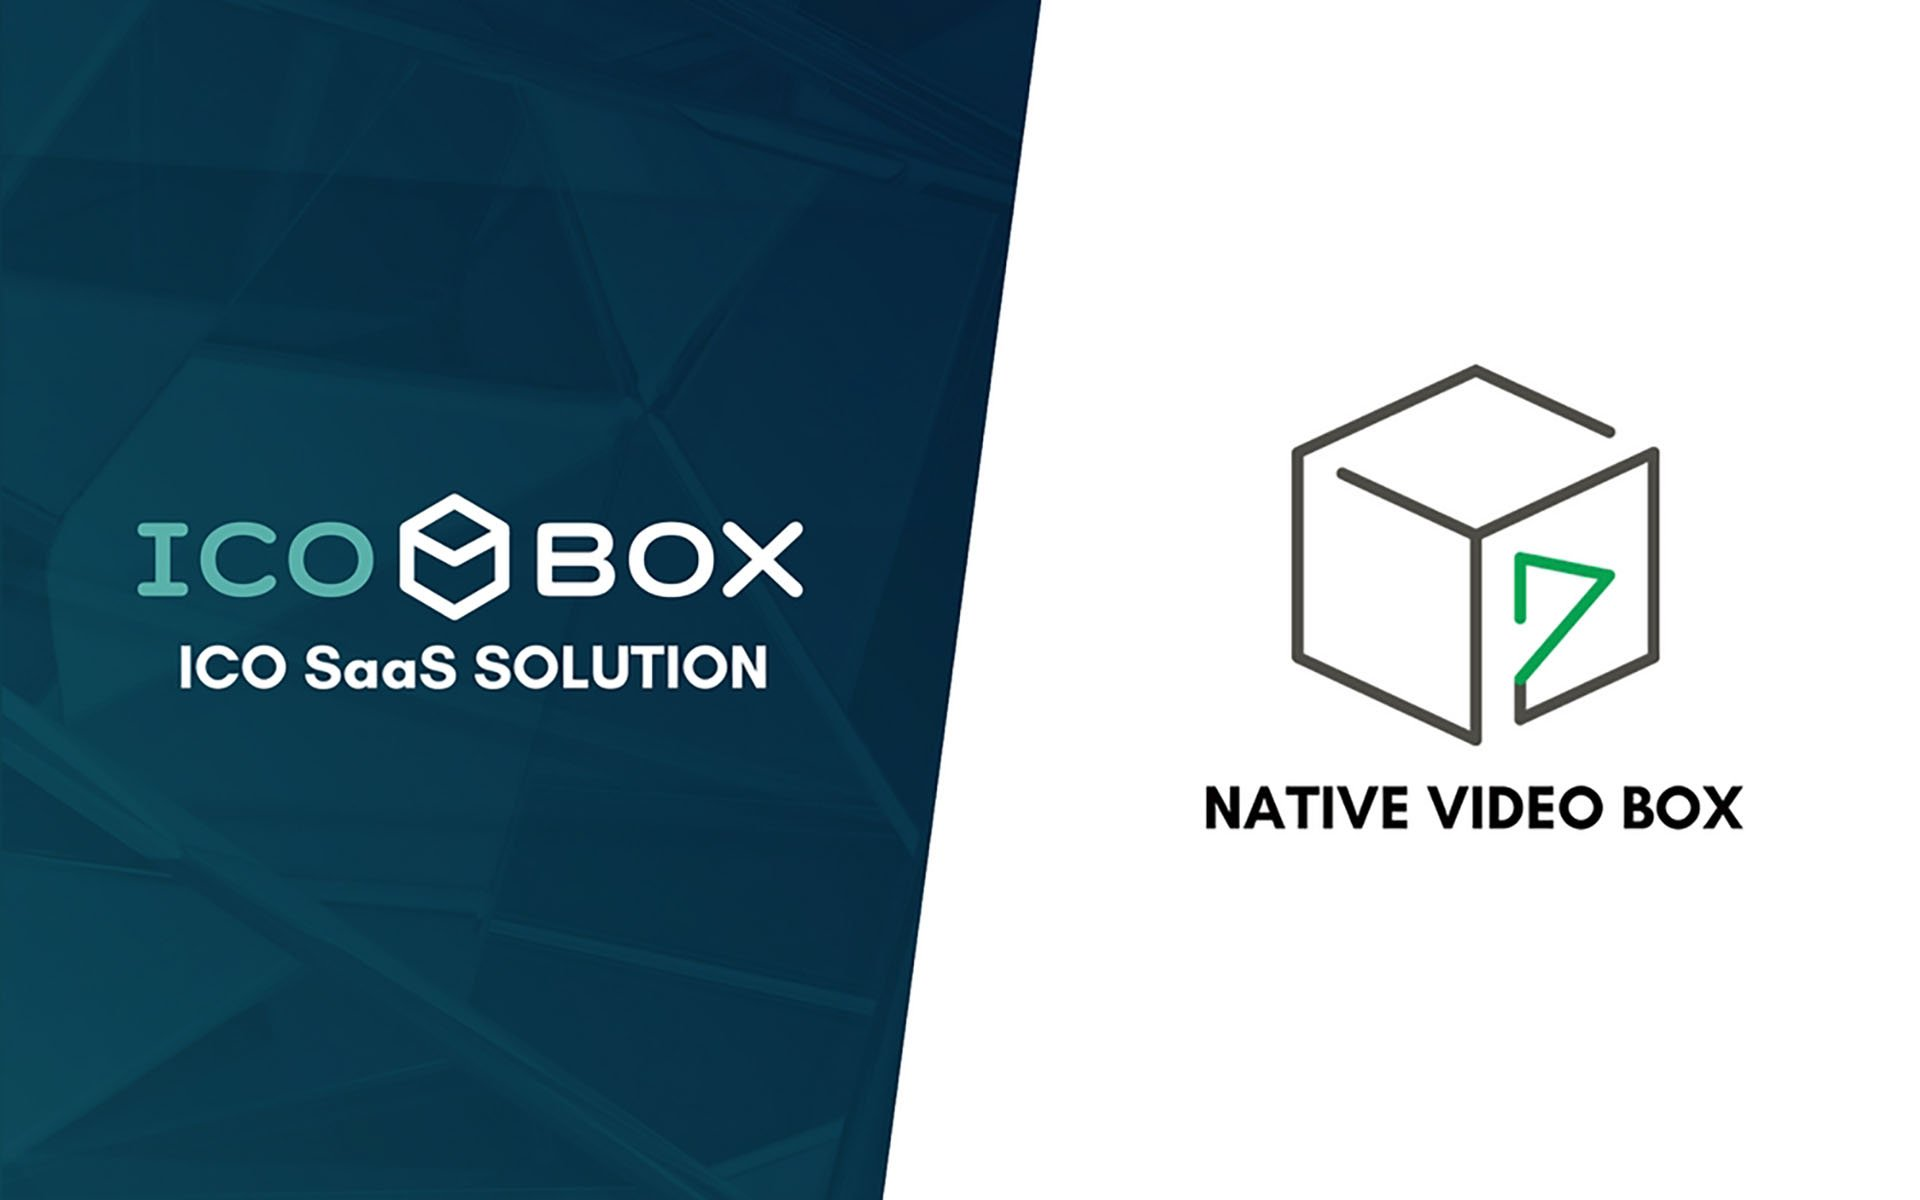 Native Video Box to Collaborate with ICOBox to Change the Digital Content Landscape